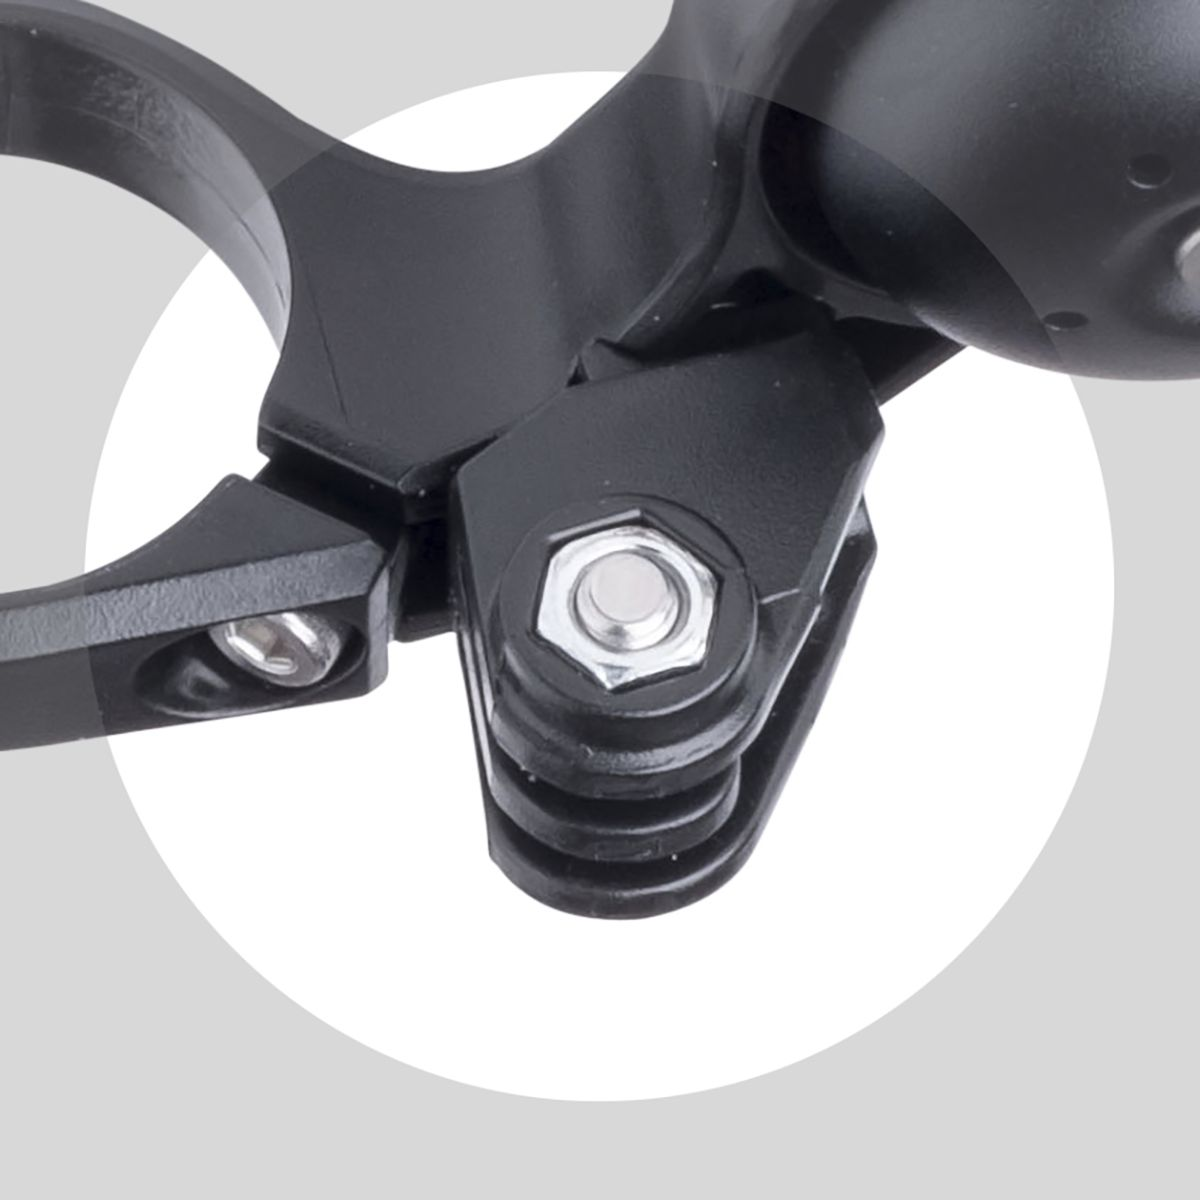 GoPro Style Adapter for HideMyBell